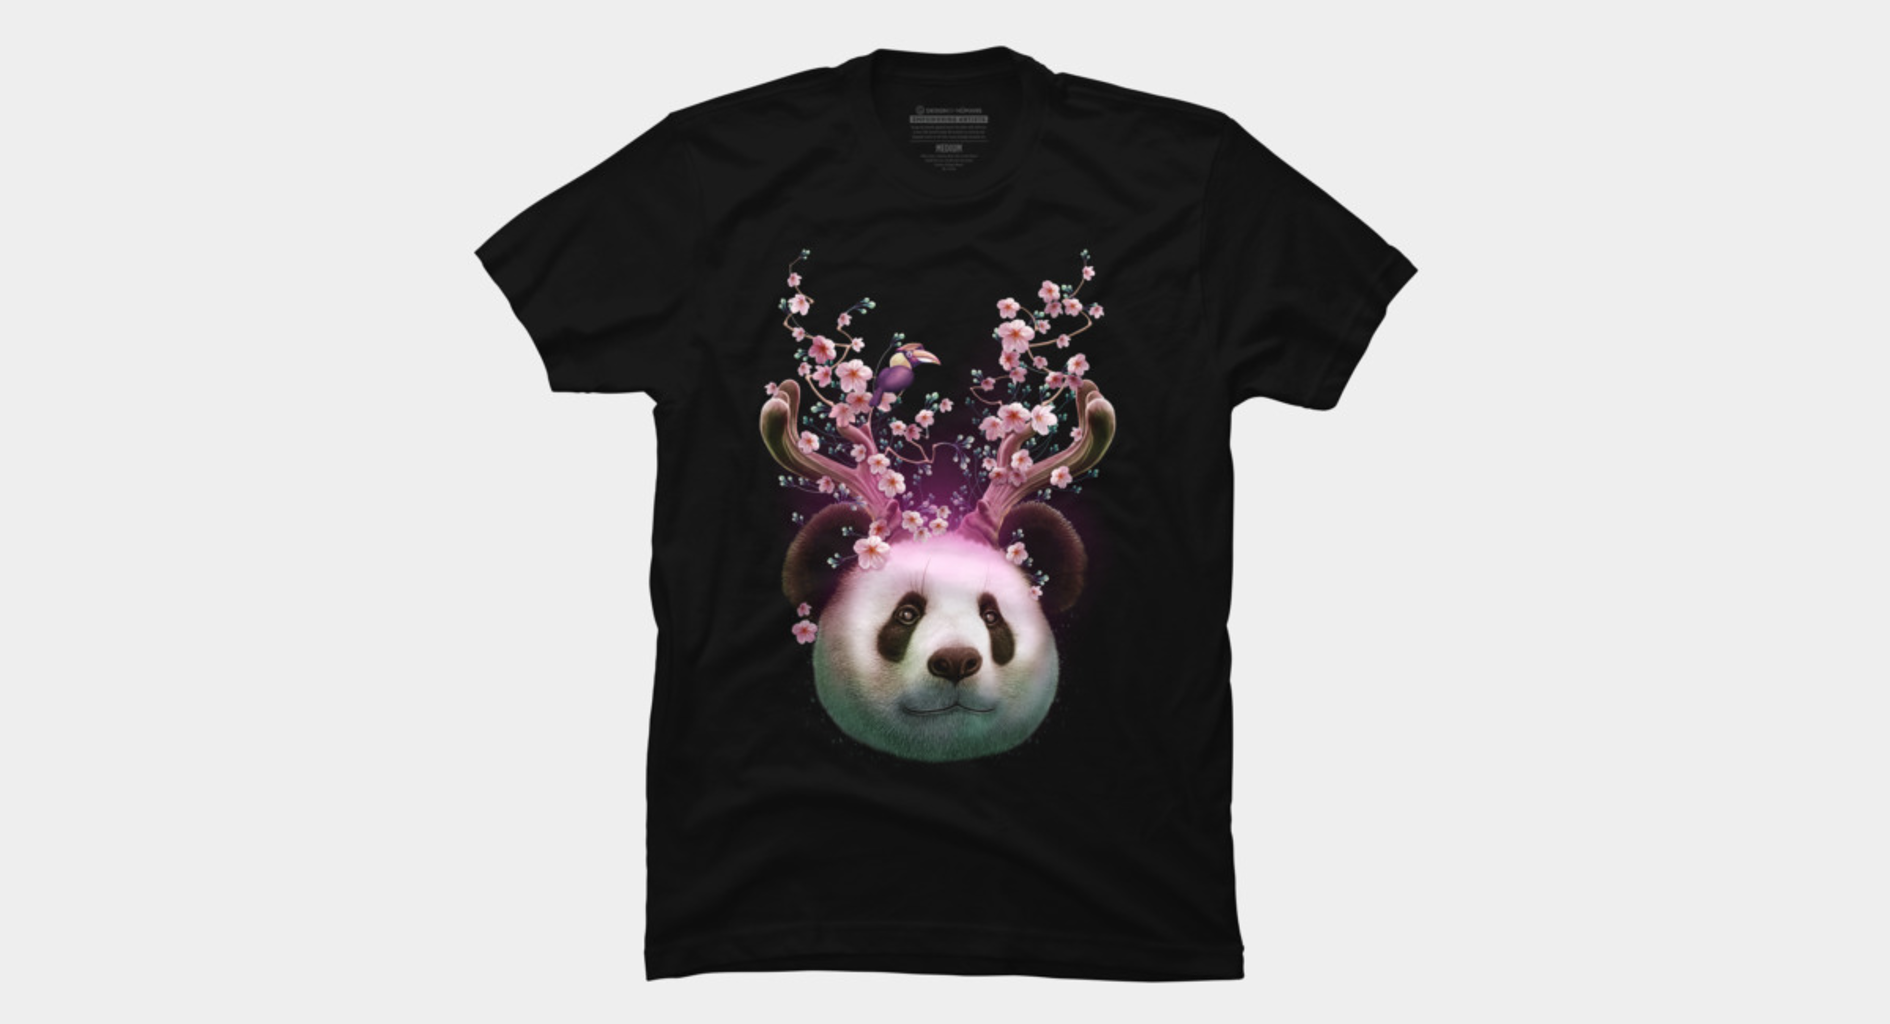 Design by Humans: PANDA HORNS UP